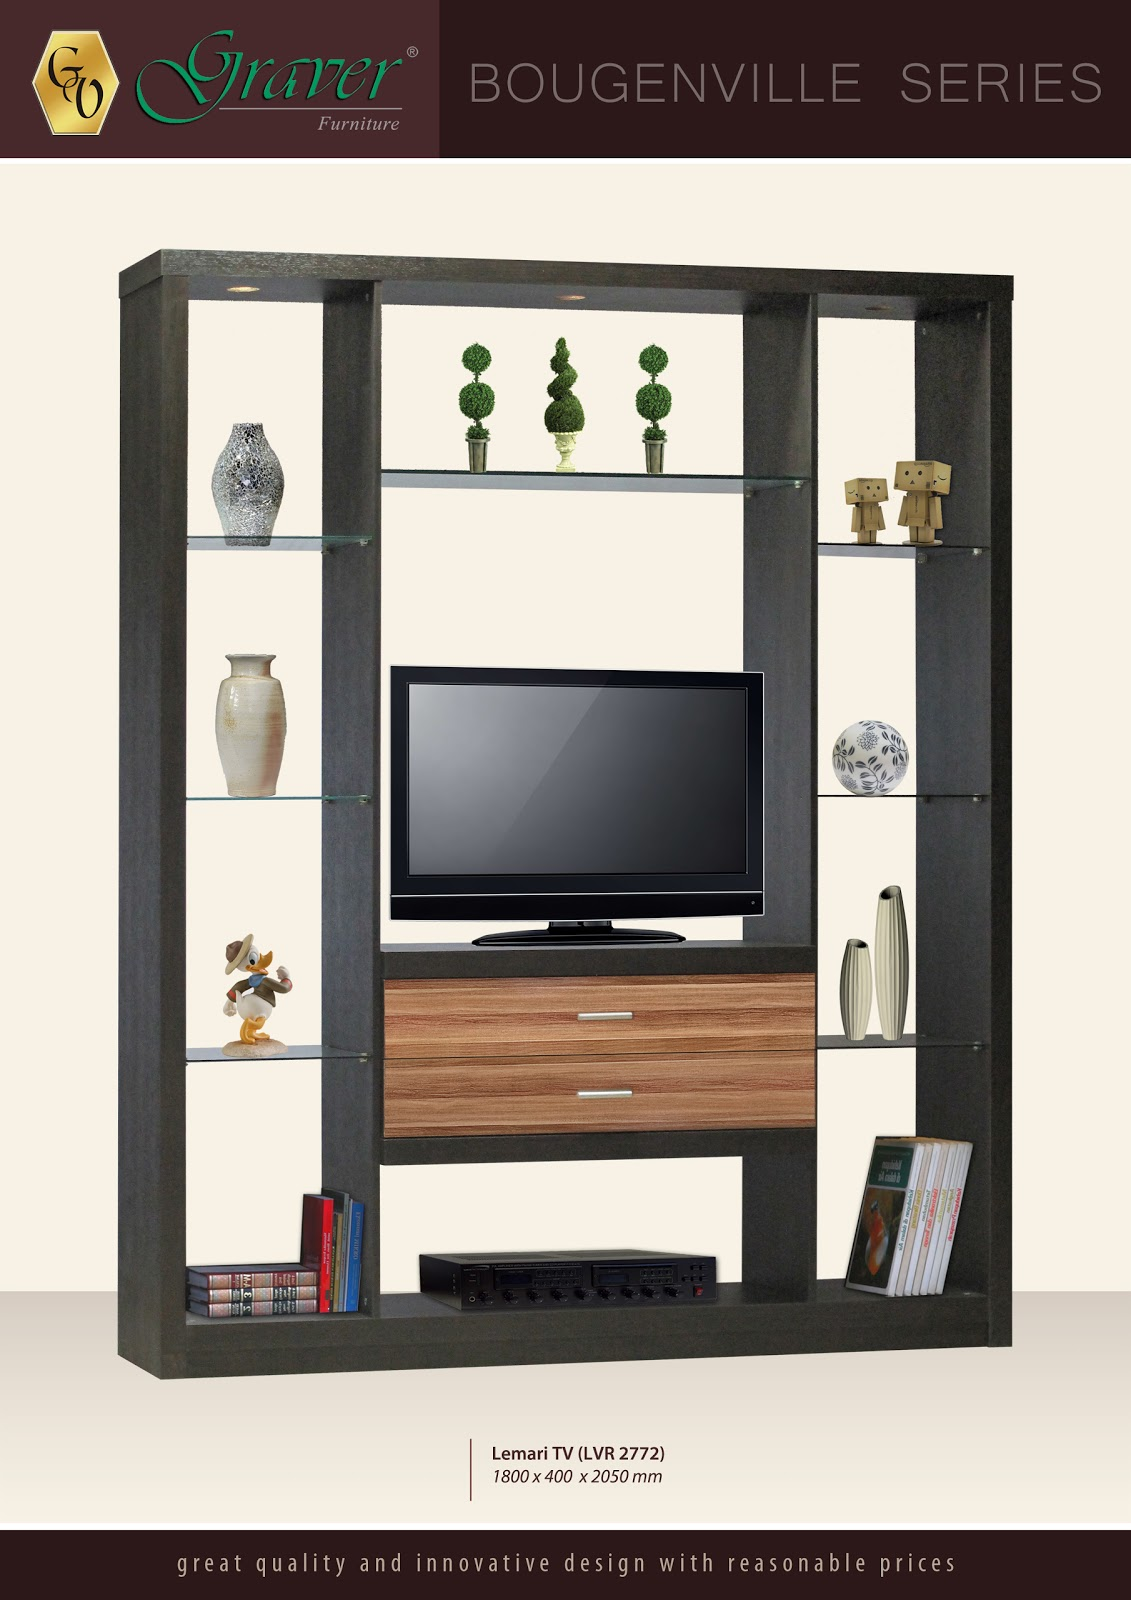 Pvc Tv Showcase Pvc Tv Cabinets Tv Unit Pvc Tv Online: Toko Furniture Di Cianjur: LEMARI TV _ BOUGENVILLE SERIES